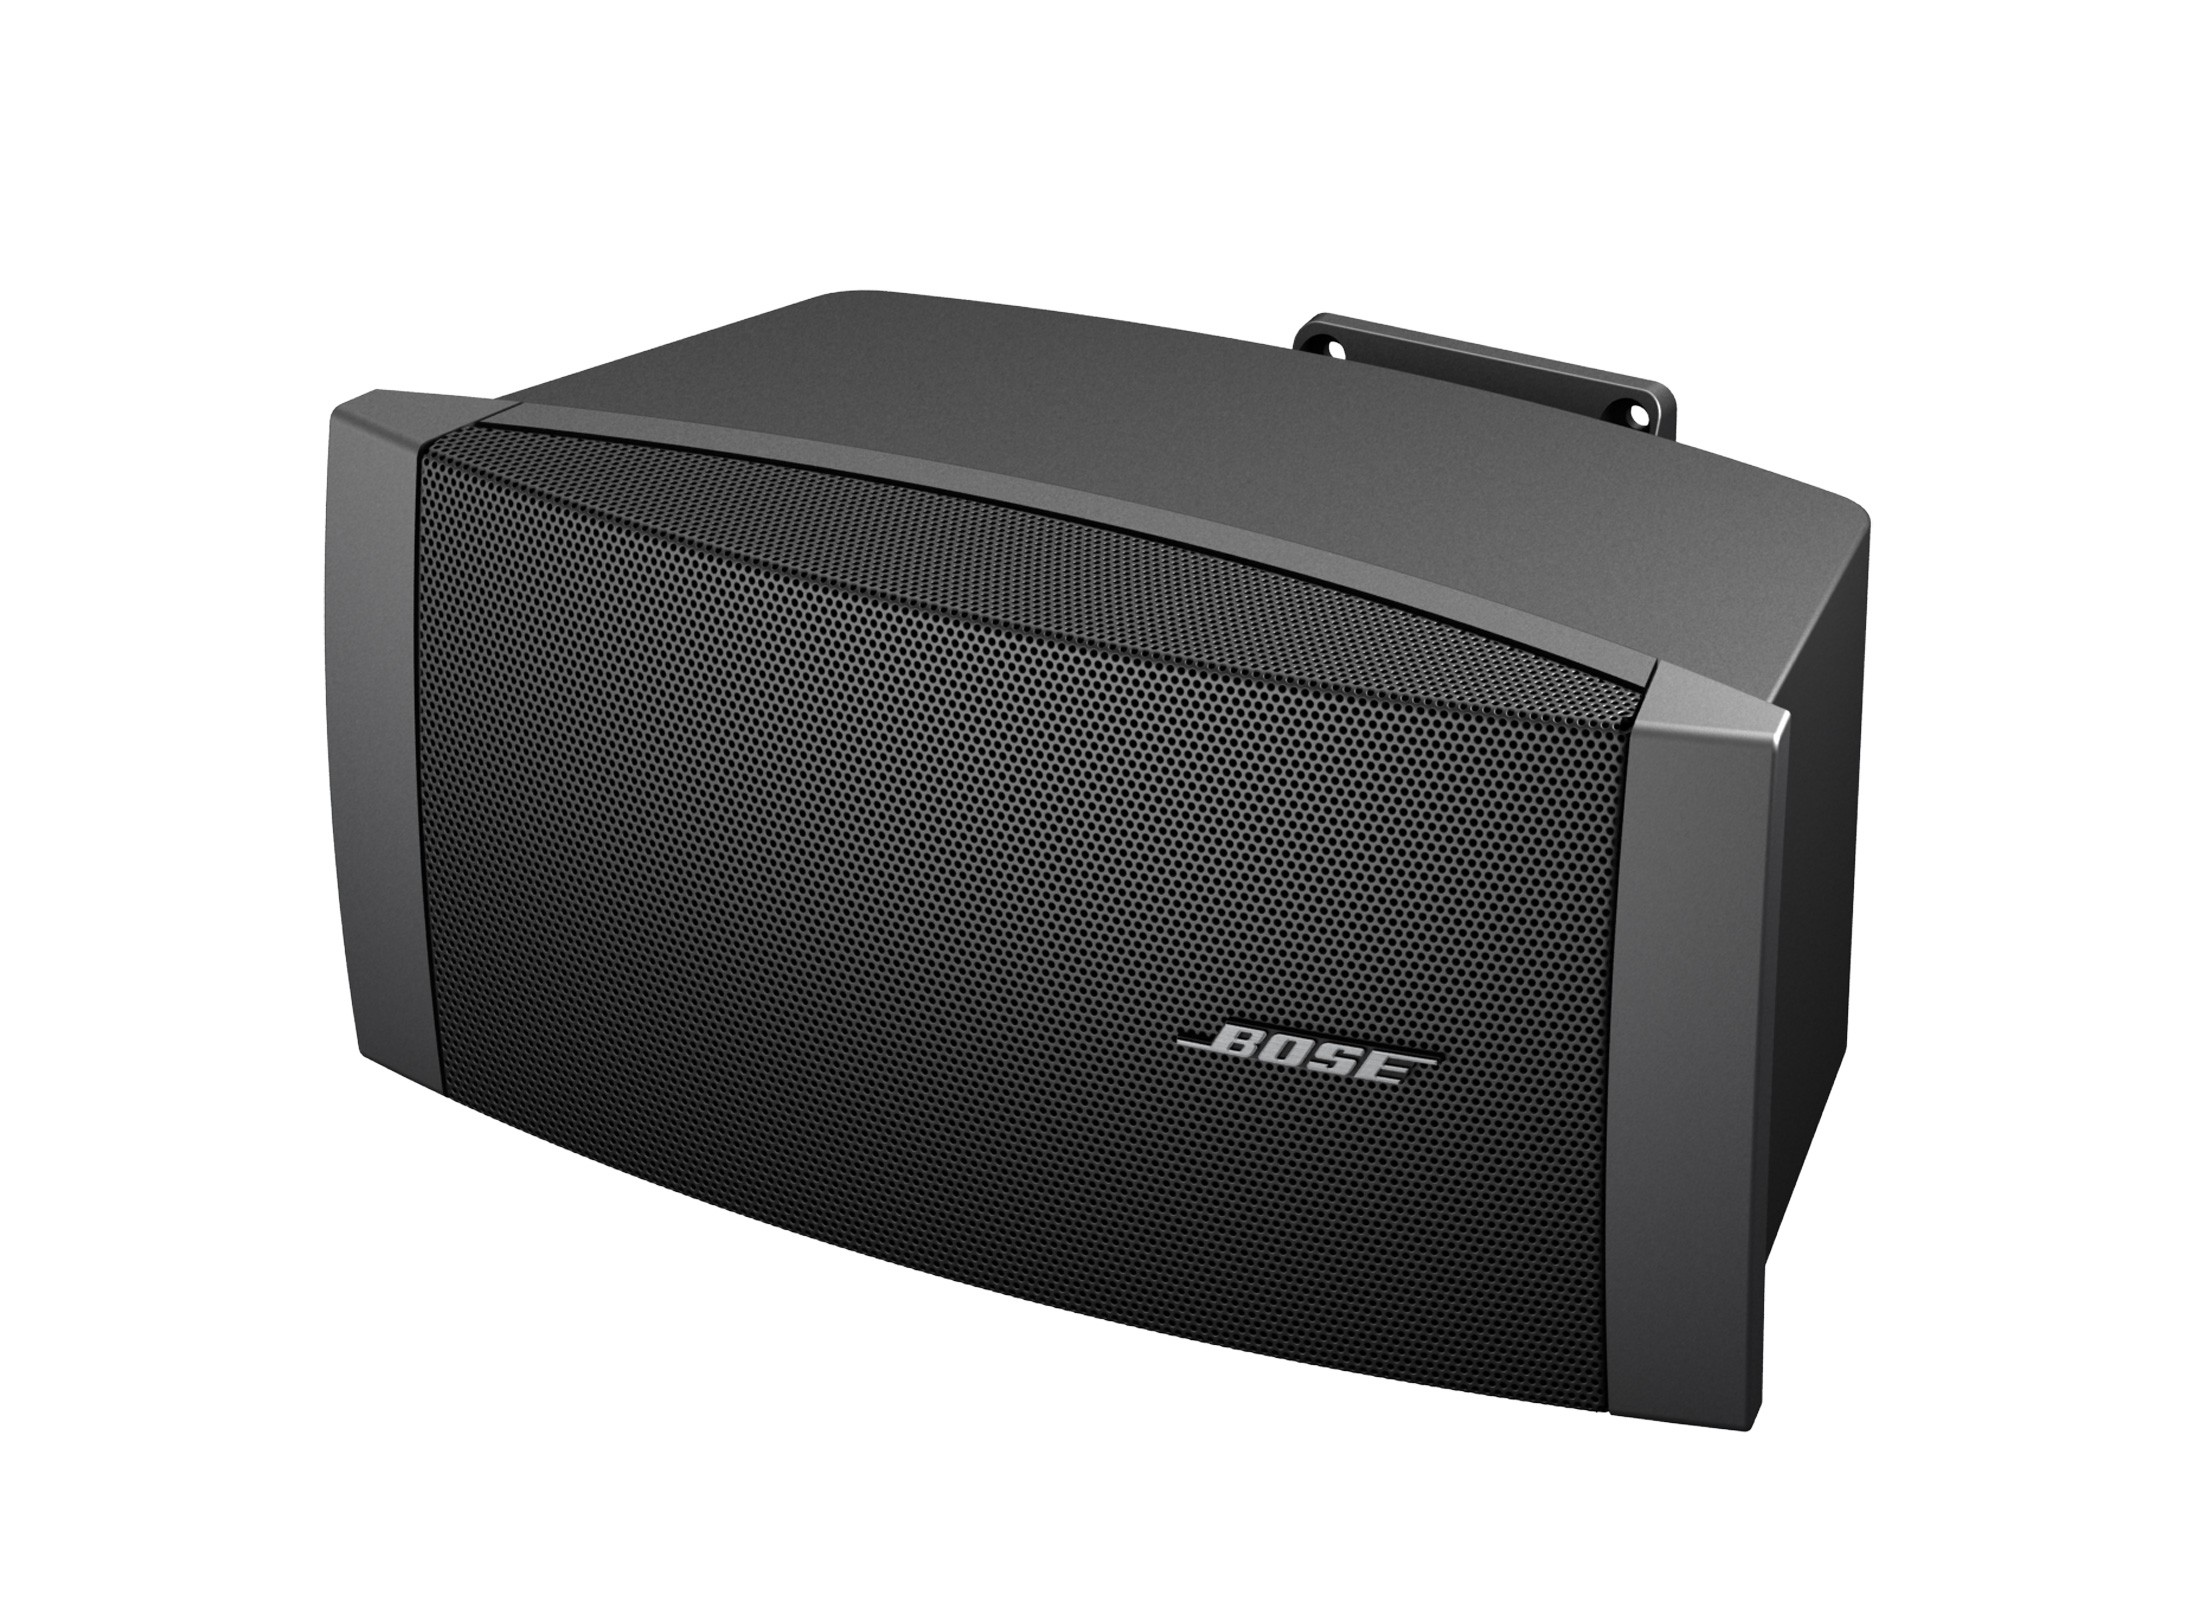 bose freespace ds 100se outdoor speaker black online at low prices at huss light sound. Black Bedroom Furniture Sets. Home Design Ideas